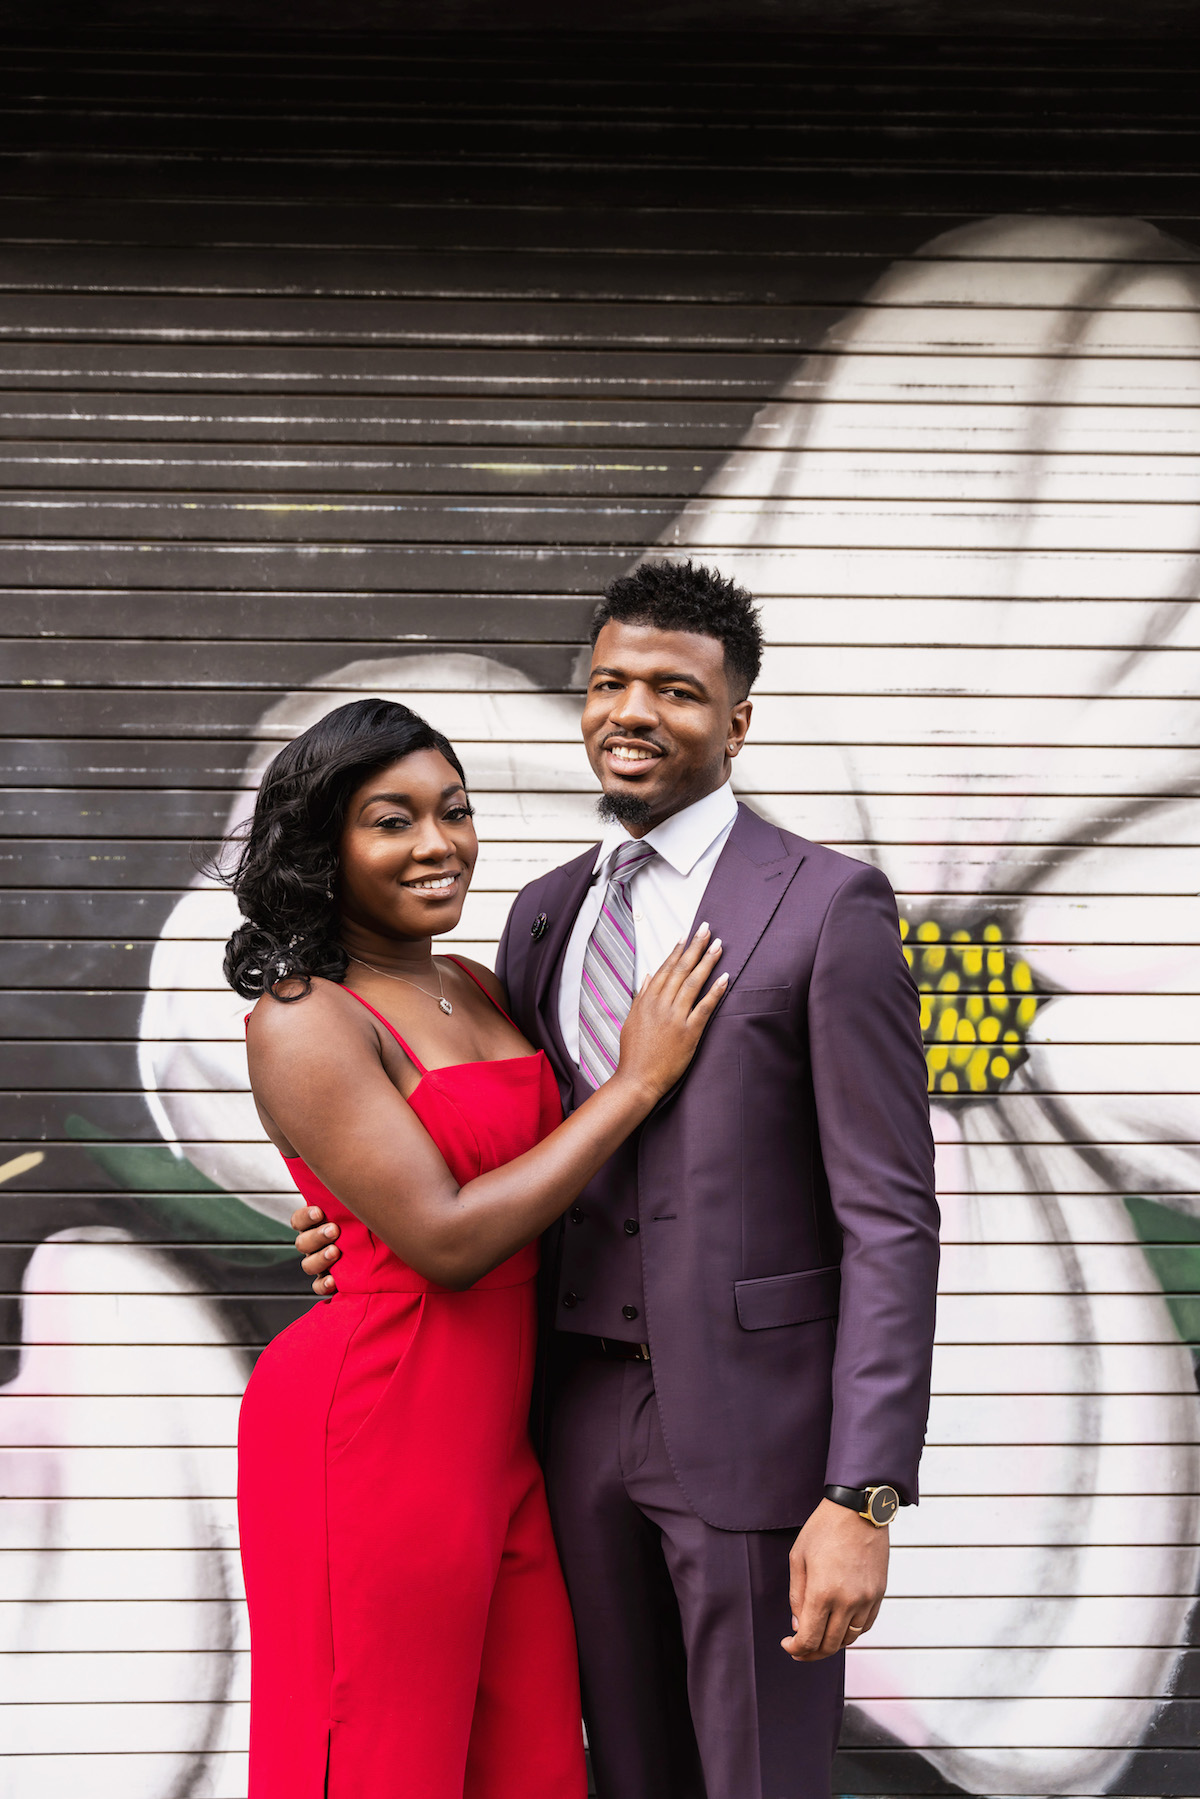 Married at First Sight couple Paige Banks and Chris Williams